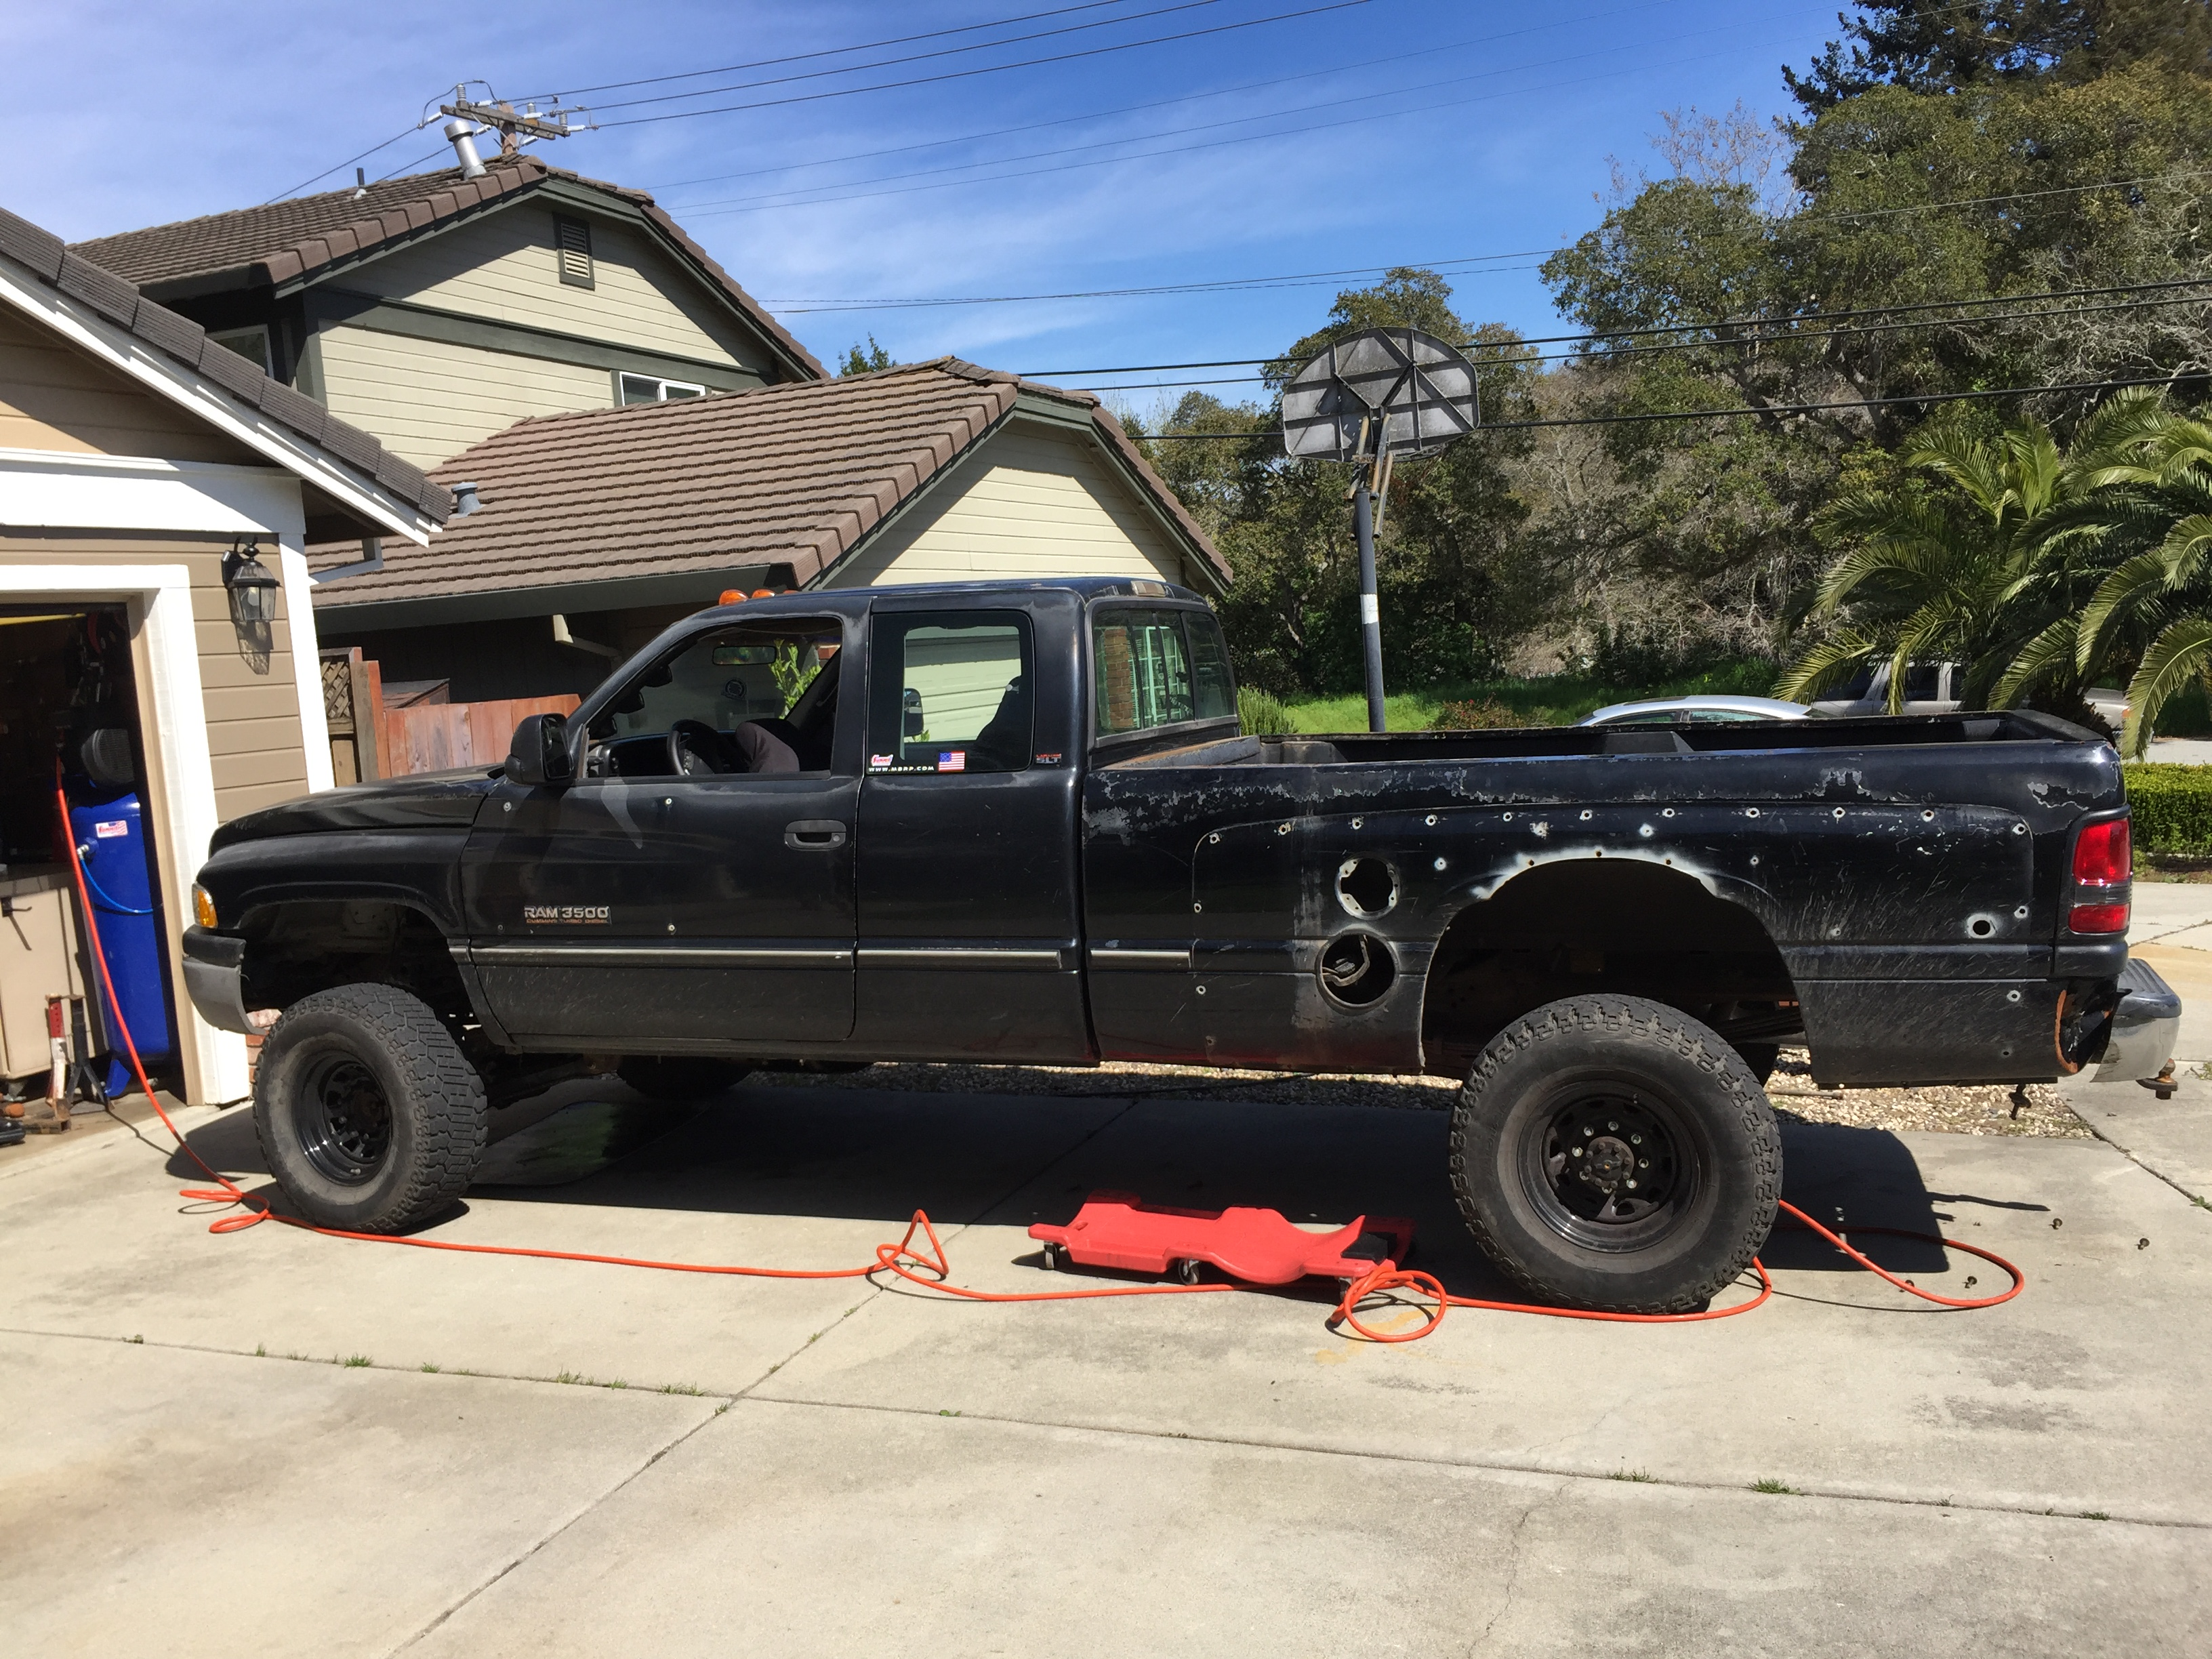 96 dodge flatbed build Pirate4x4 4x4 and f Road Forum